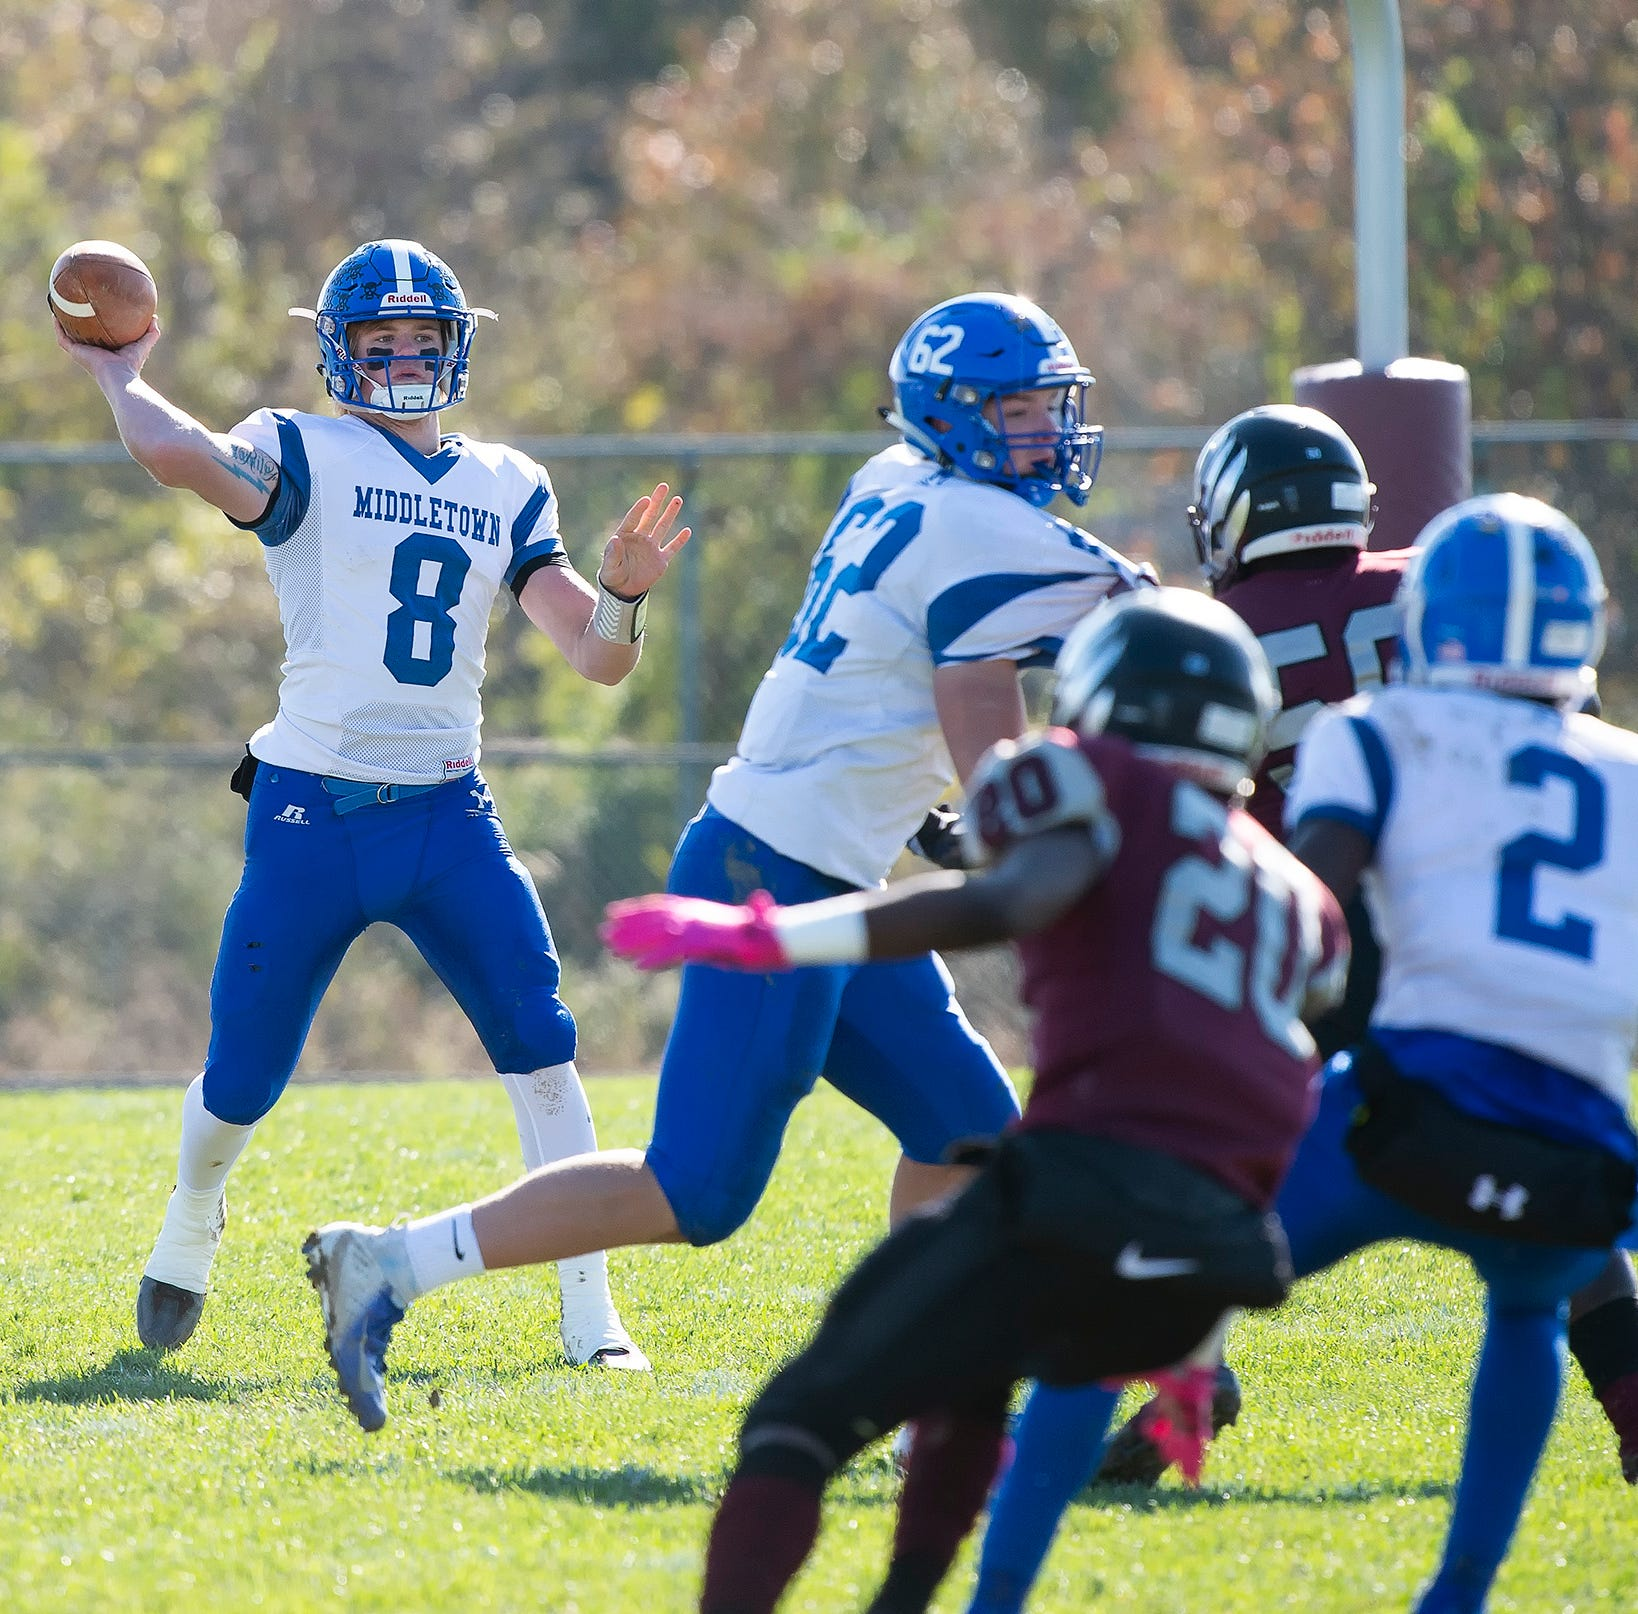 Myers: DIAA football playoffs certain to produce twists and turns